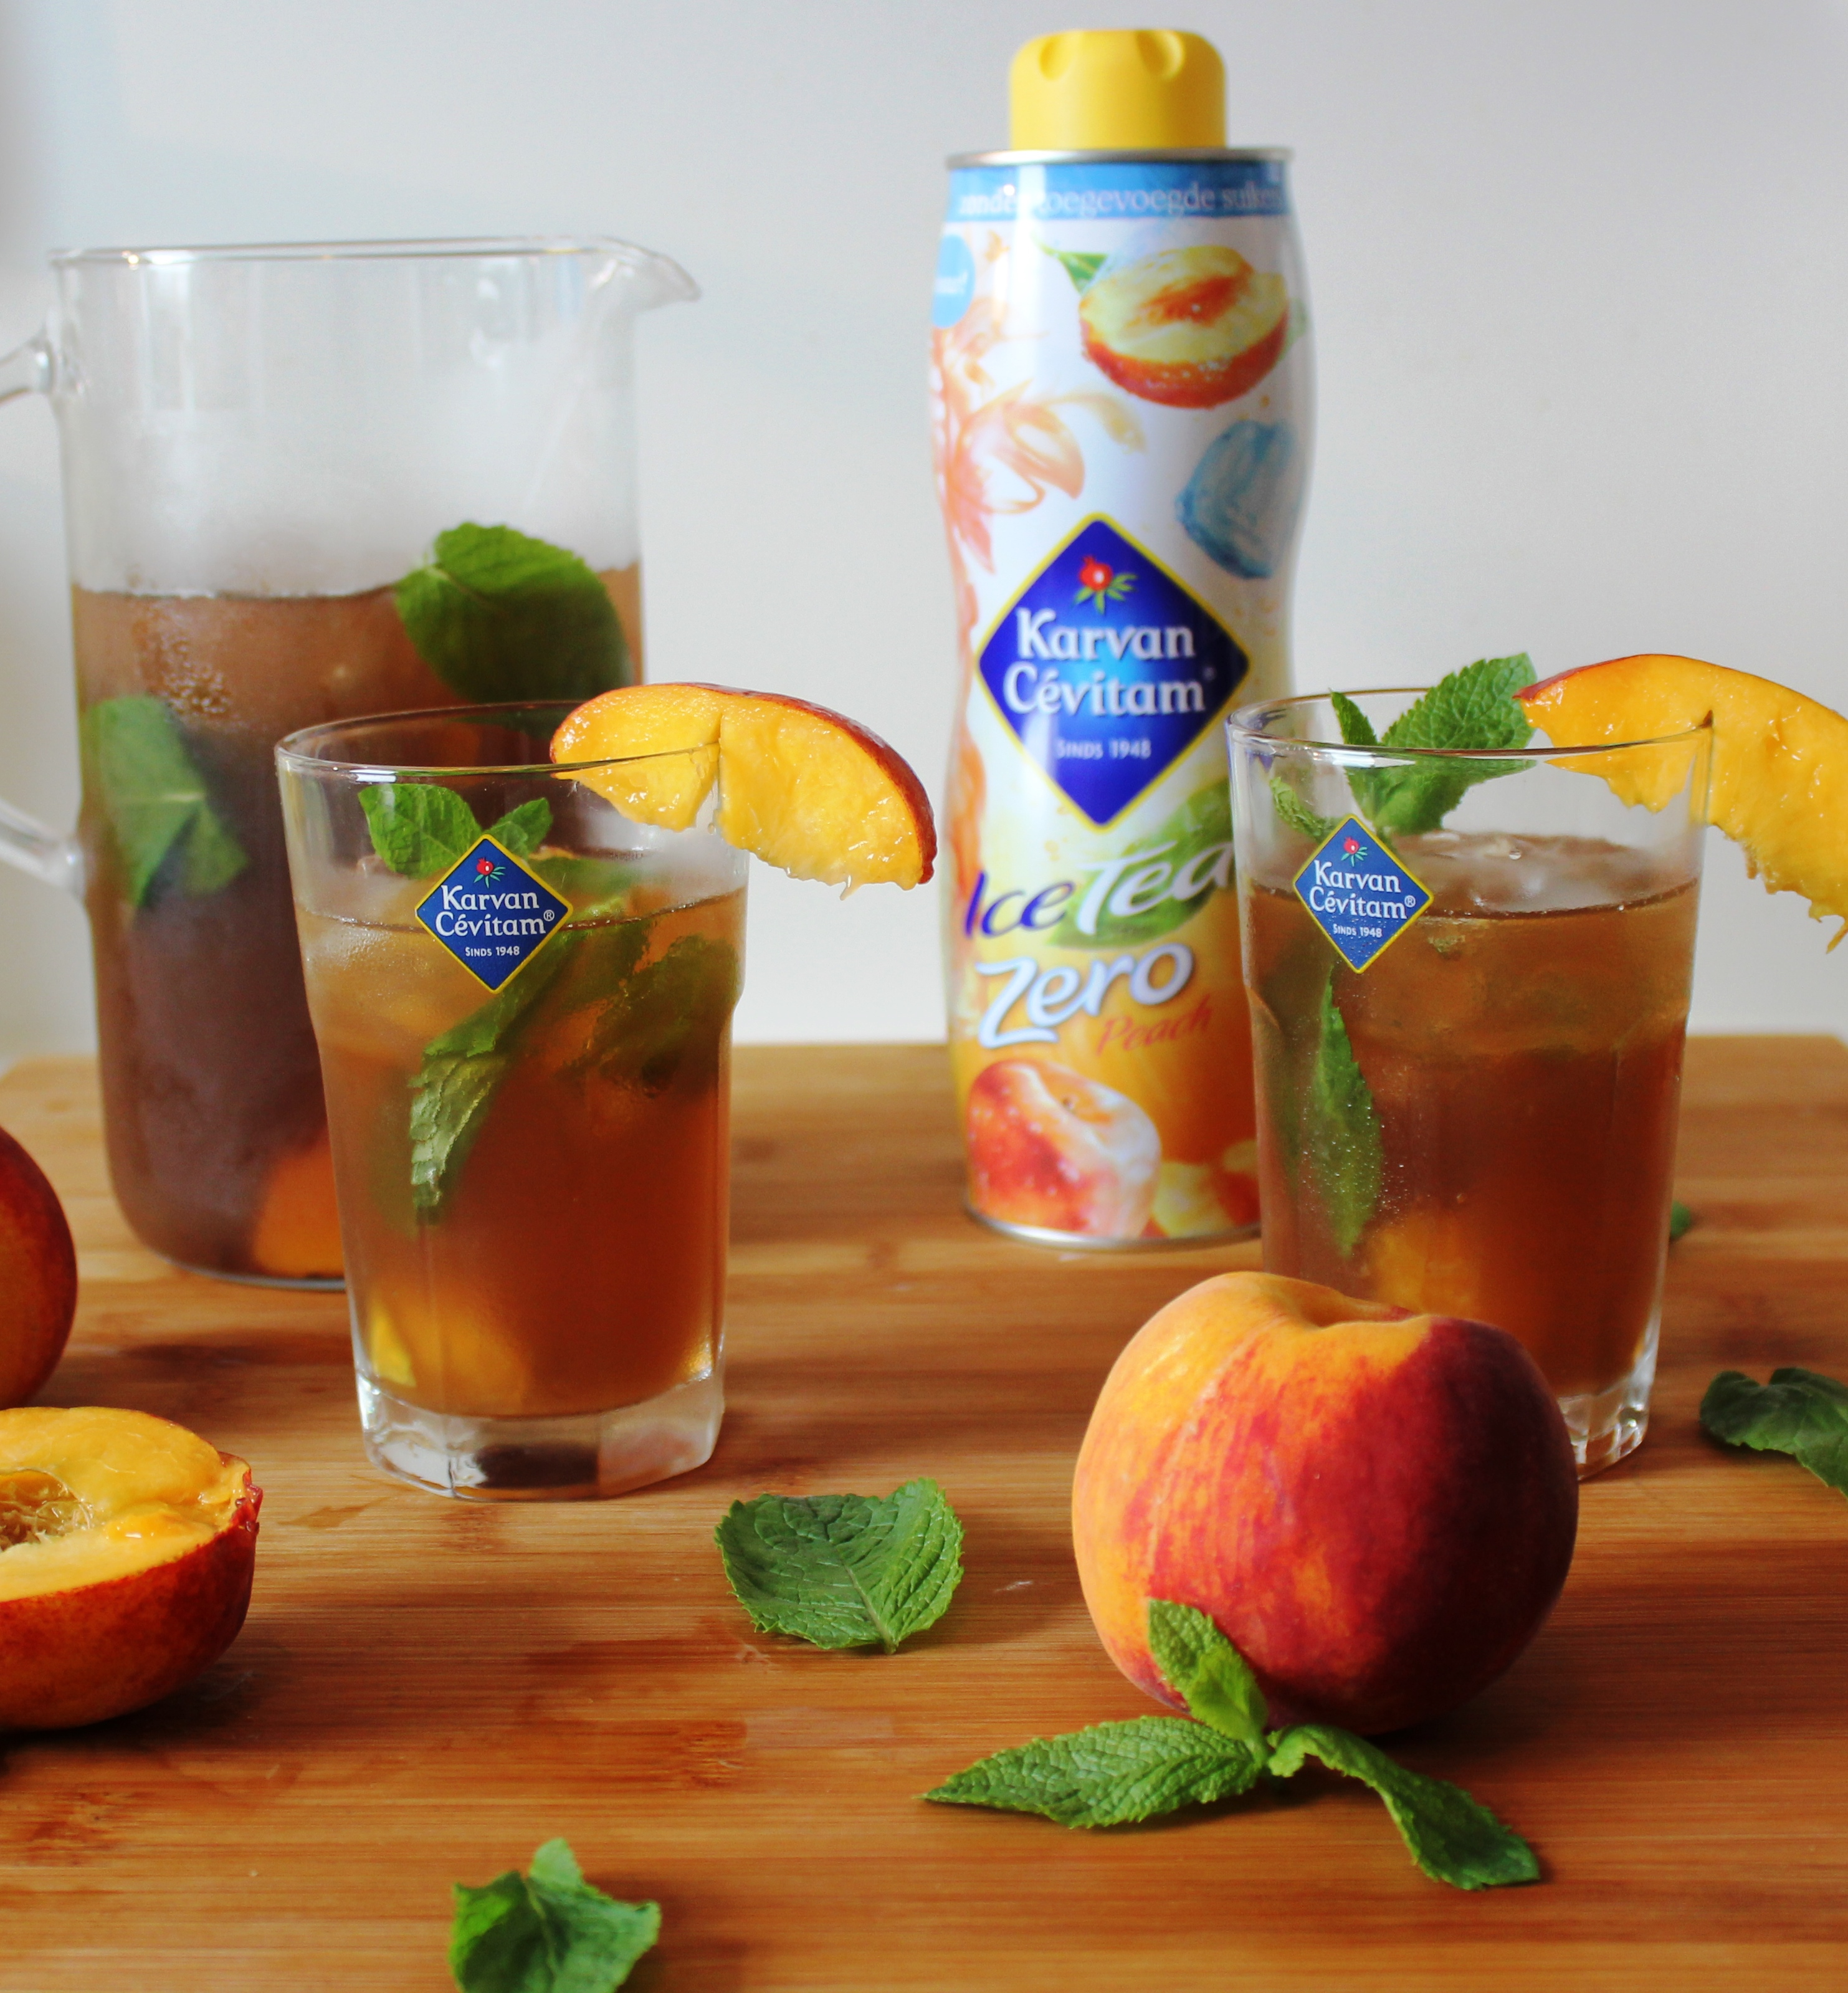 Karvan Cevitam Ice Tea Zero Peach Review